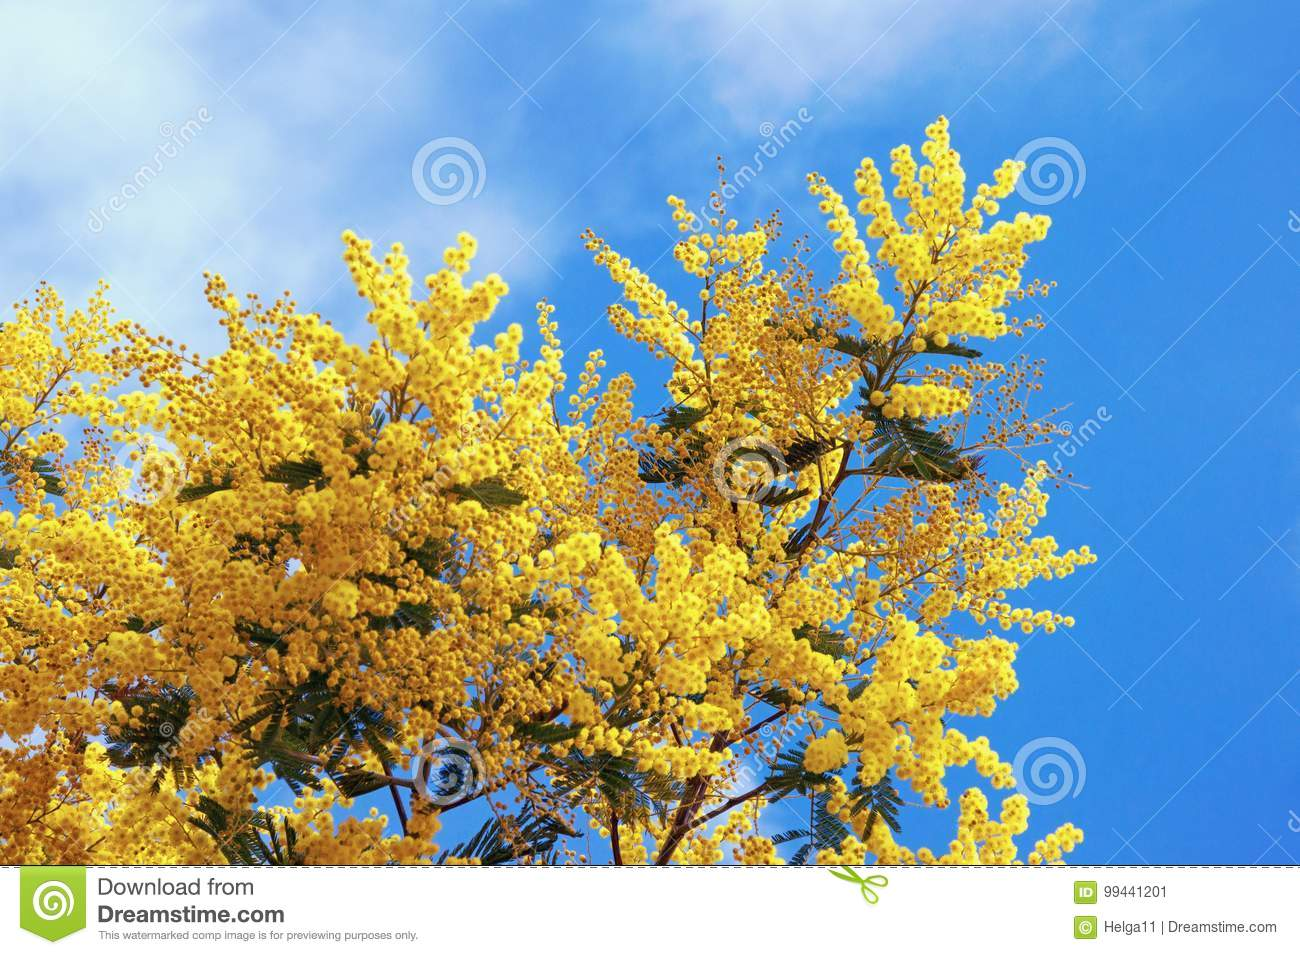 Springtime Branches Of Flowering Acacia Dealbata Mimosa Against